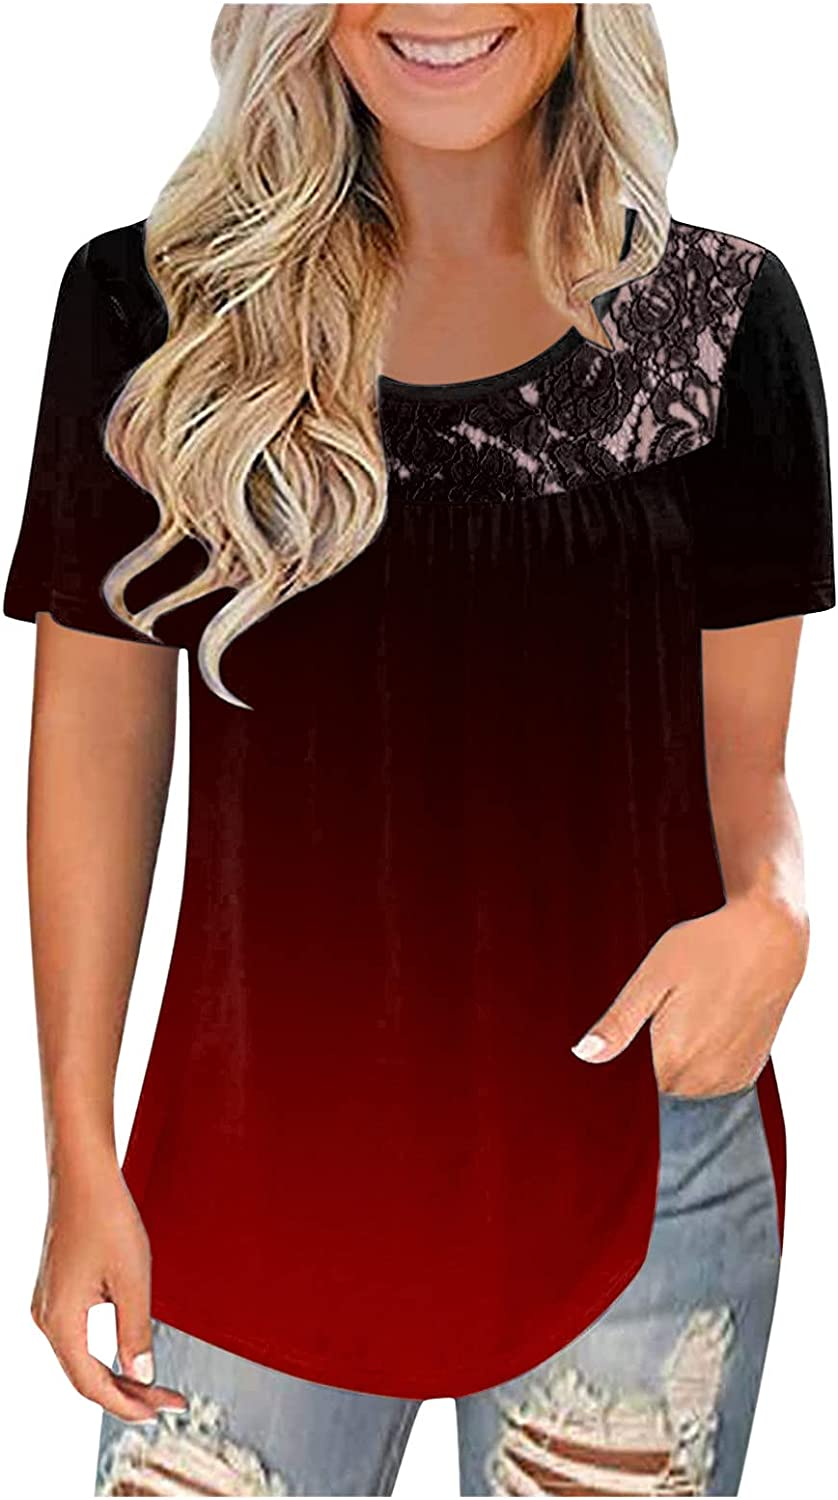 HOJICH Summer Tops for Women, Women's Lace Gradient Print O Neck T-Shirts Casual Short Sleeve Loose Blouse Tops Tunics